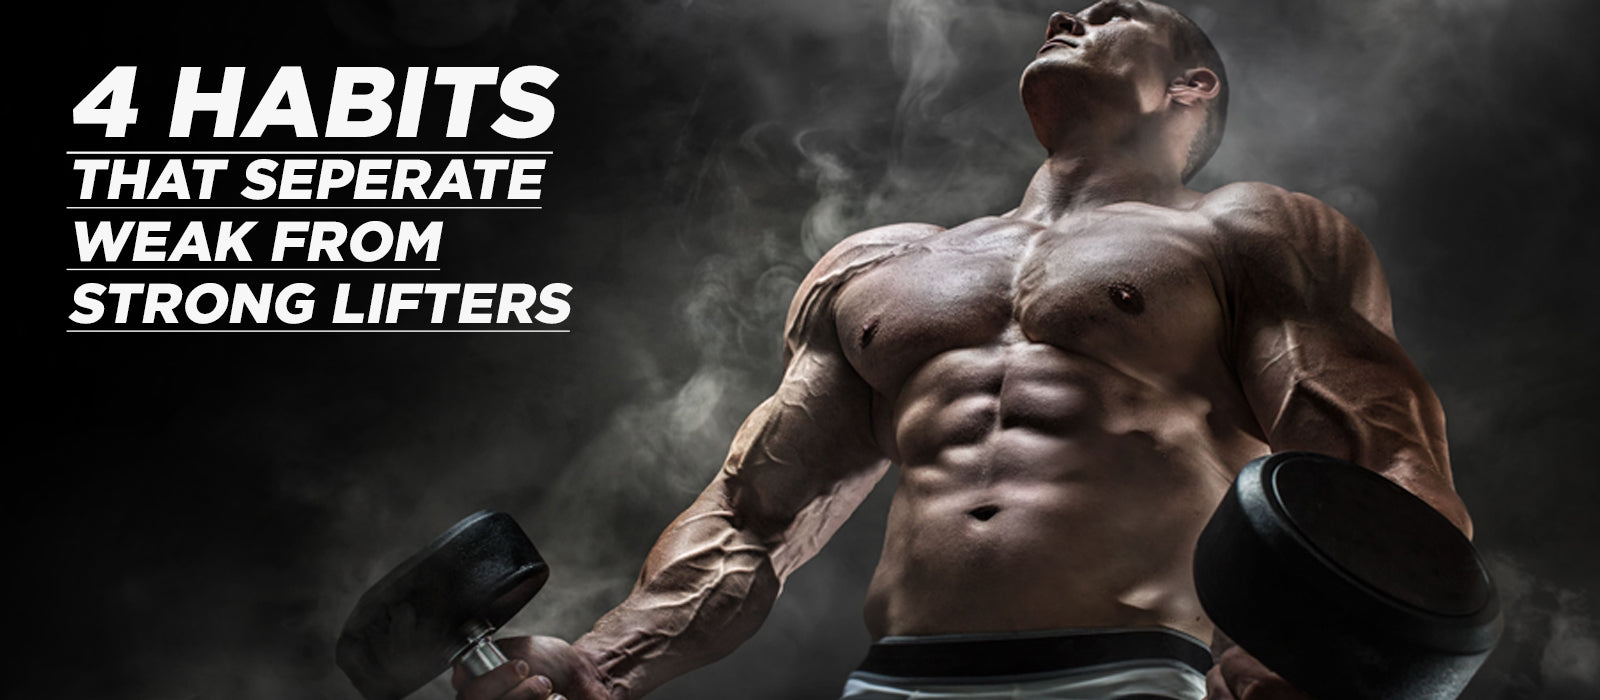 4 Habits That Separate Weak From Strong Lifters